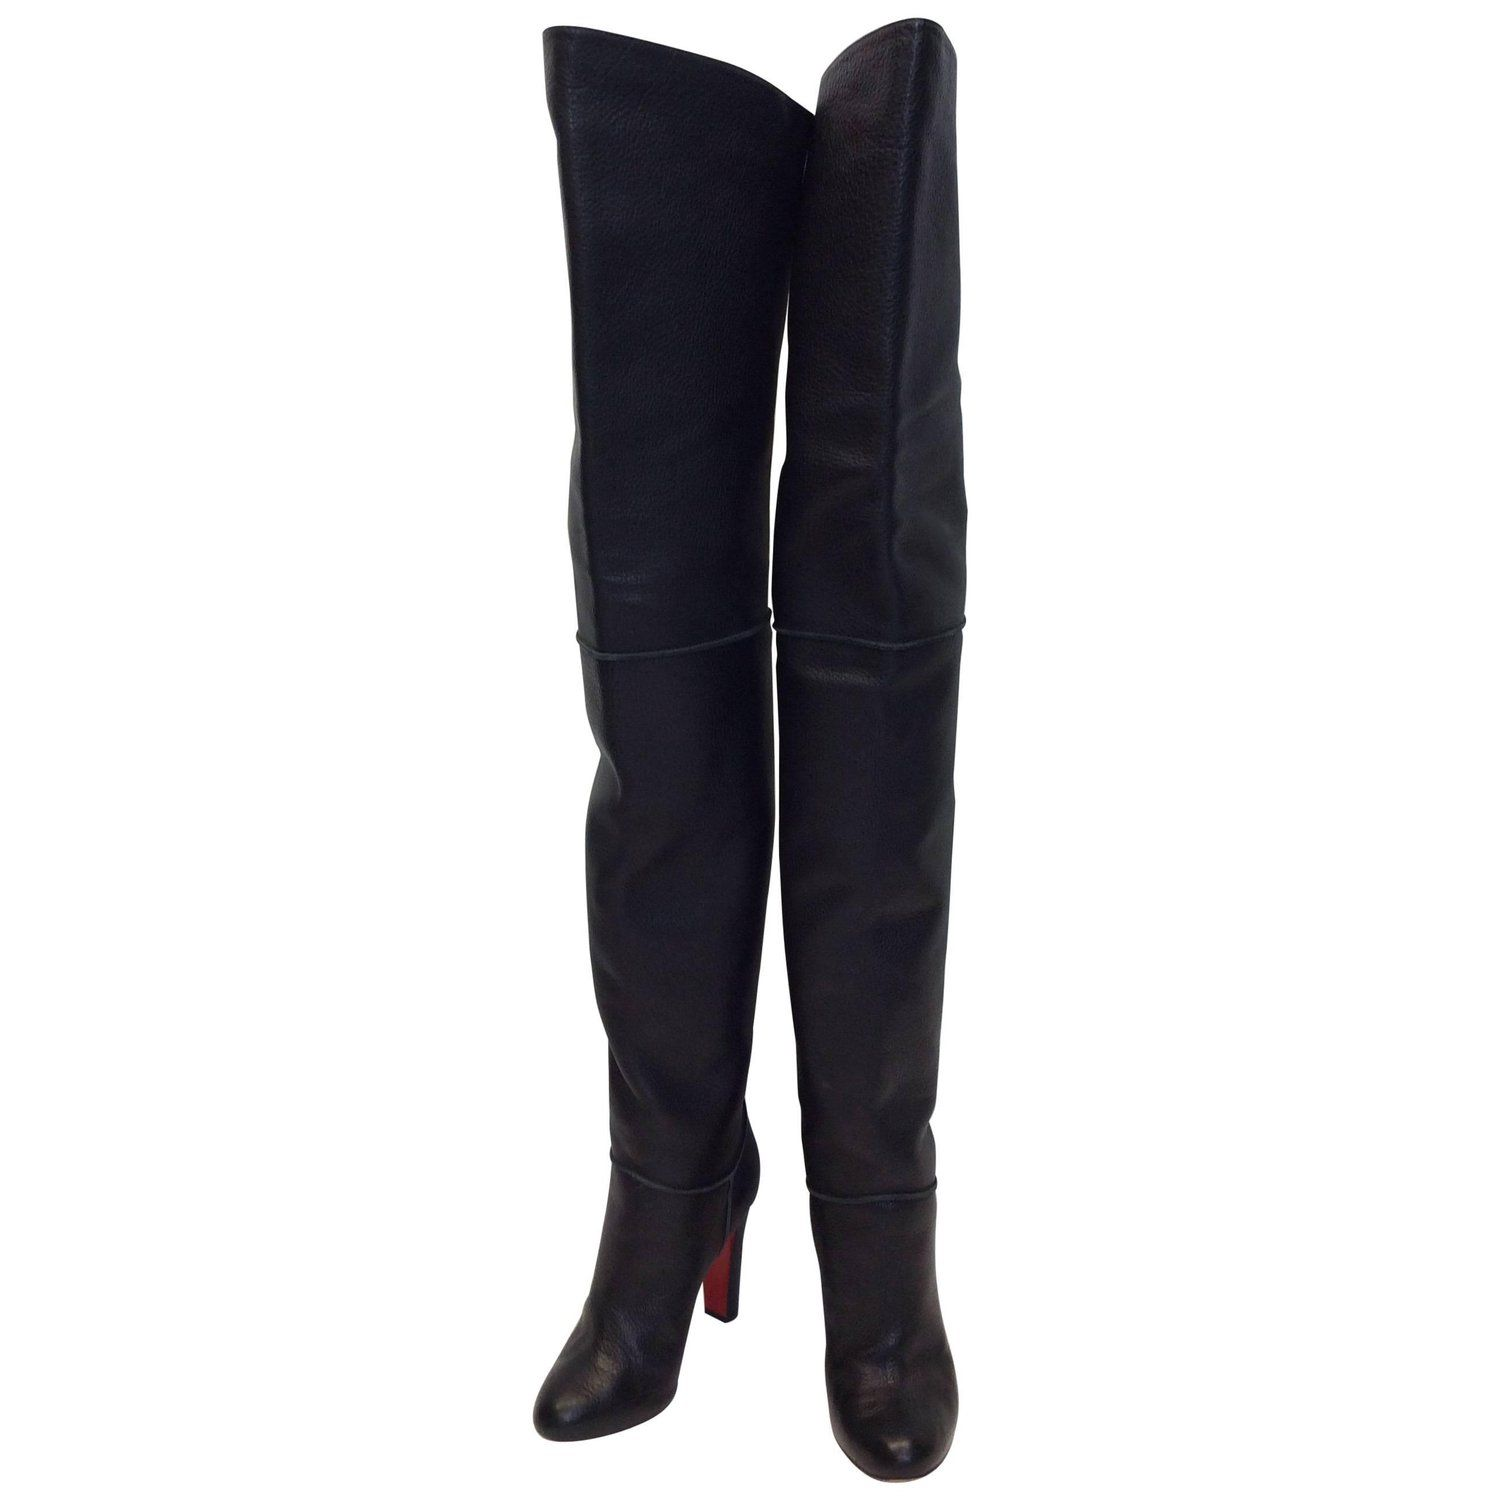 cae3baf3d6db Christian Louboutin Black Over The Knee Boots